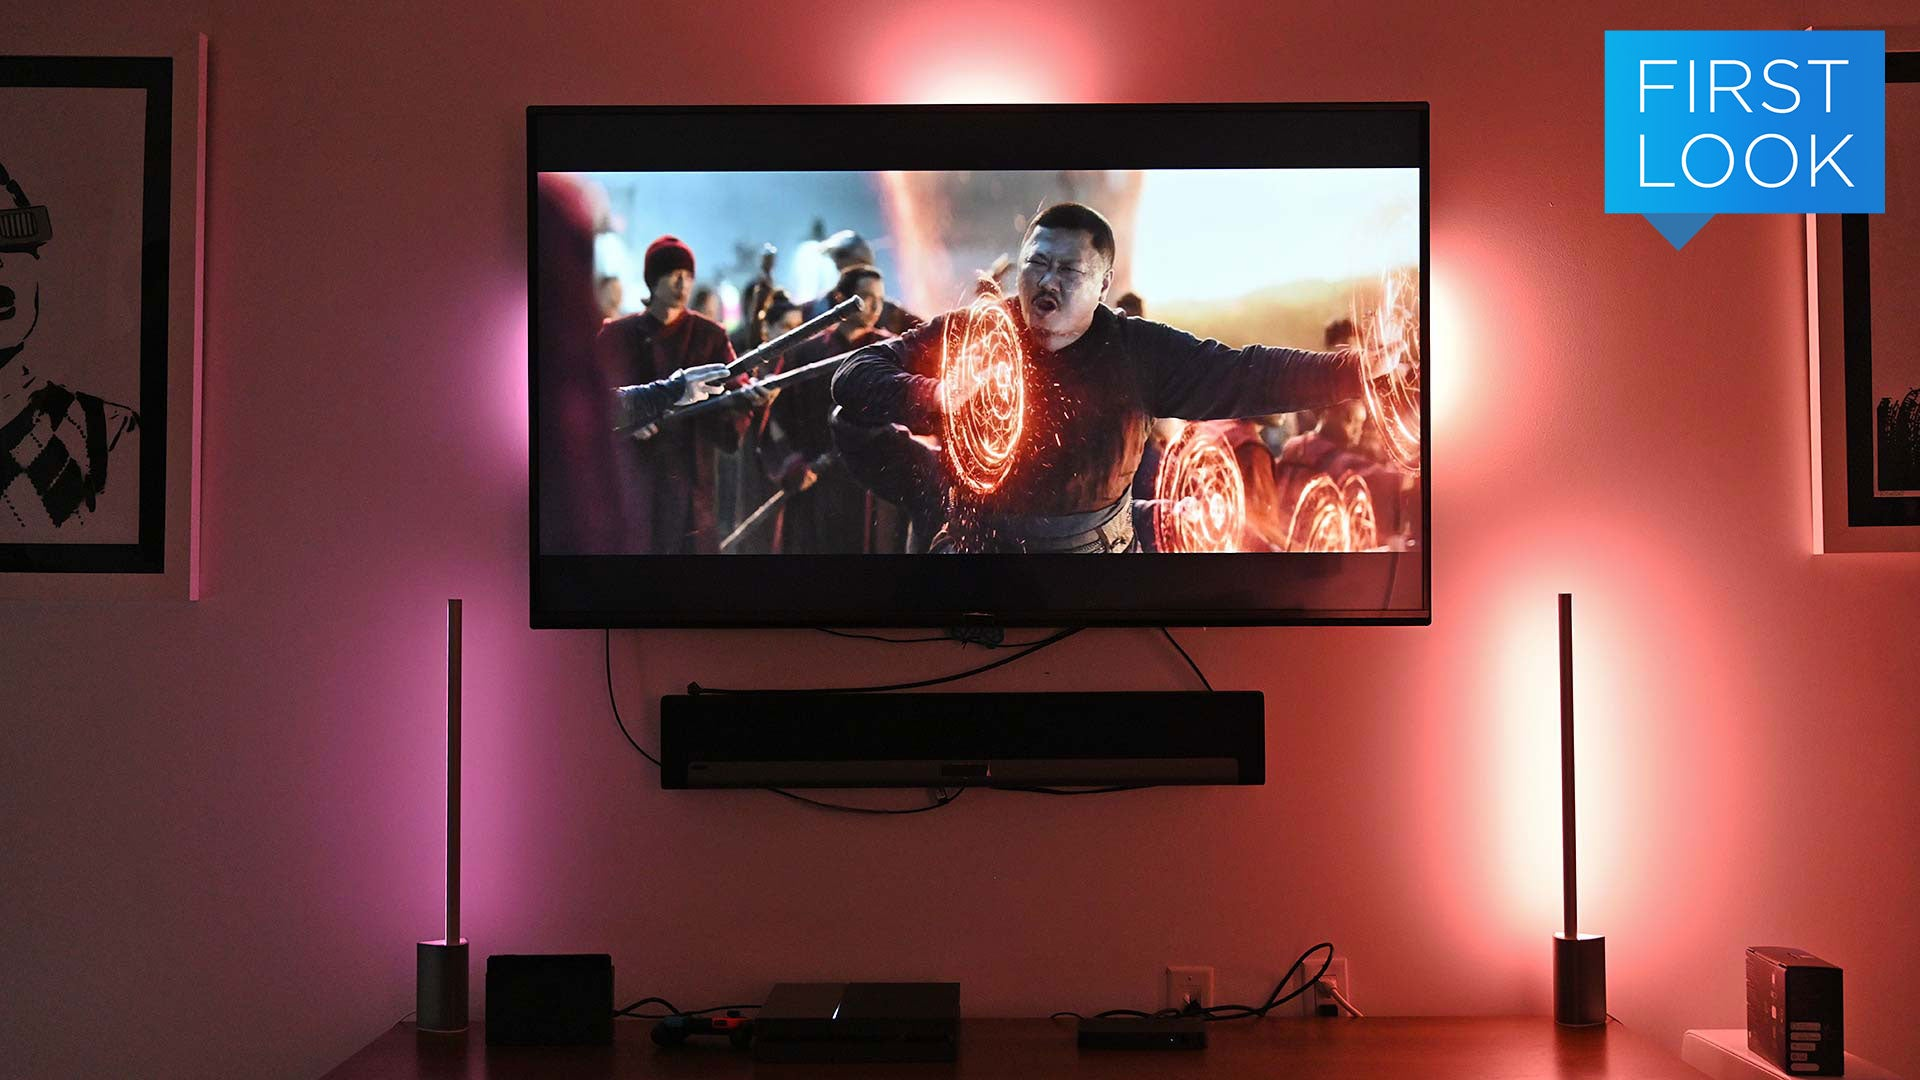 Now You Can Easily Sync Your Philips Hue Lights With Your TV